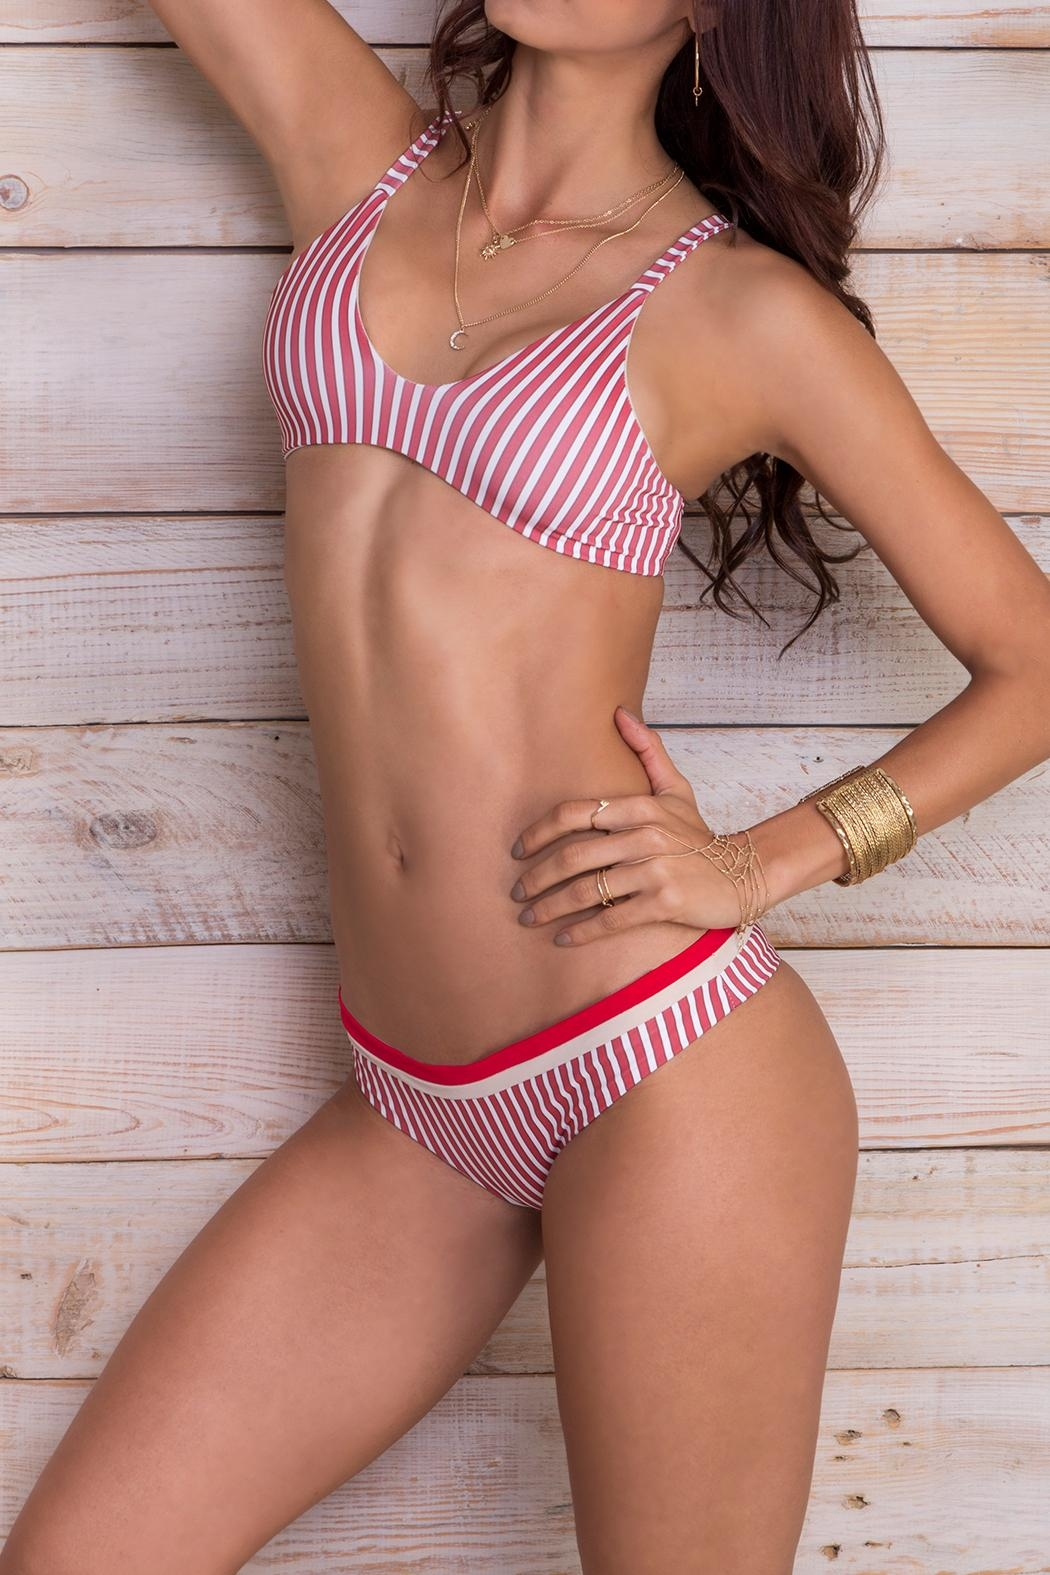 fdca8847f89 Maylana Swimwear Maky Redstripes Top from Florida by The Orchid ...